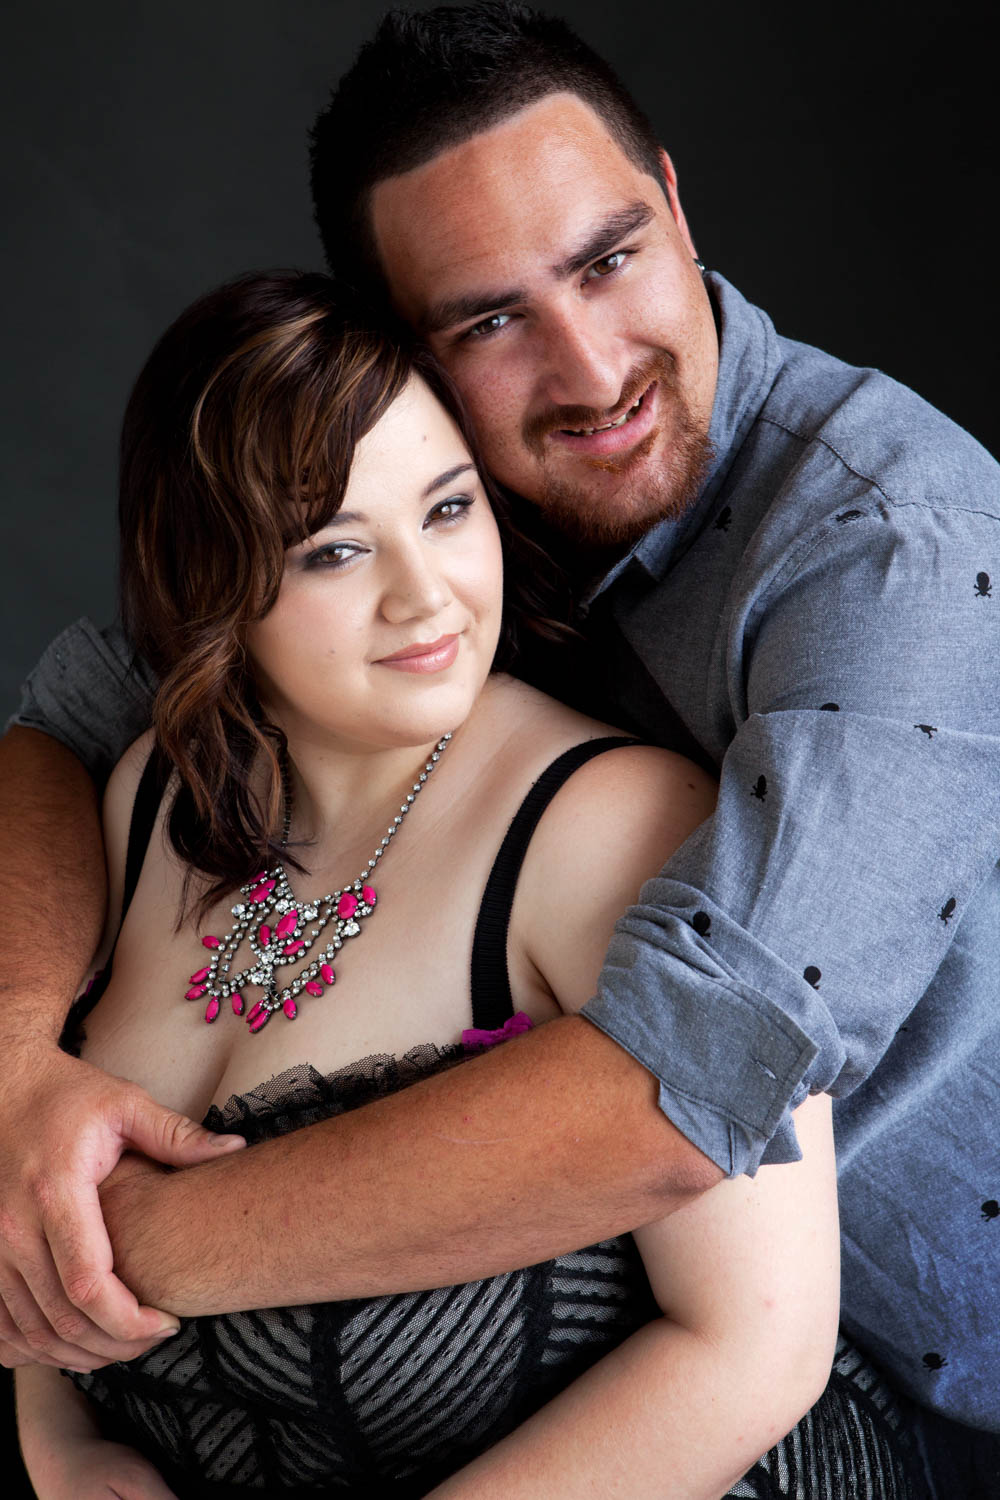 Couples_Photographer_Auckland_16935_5682.jpg